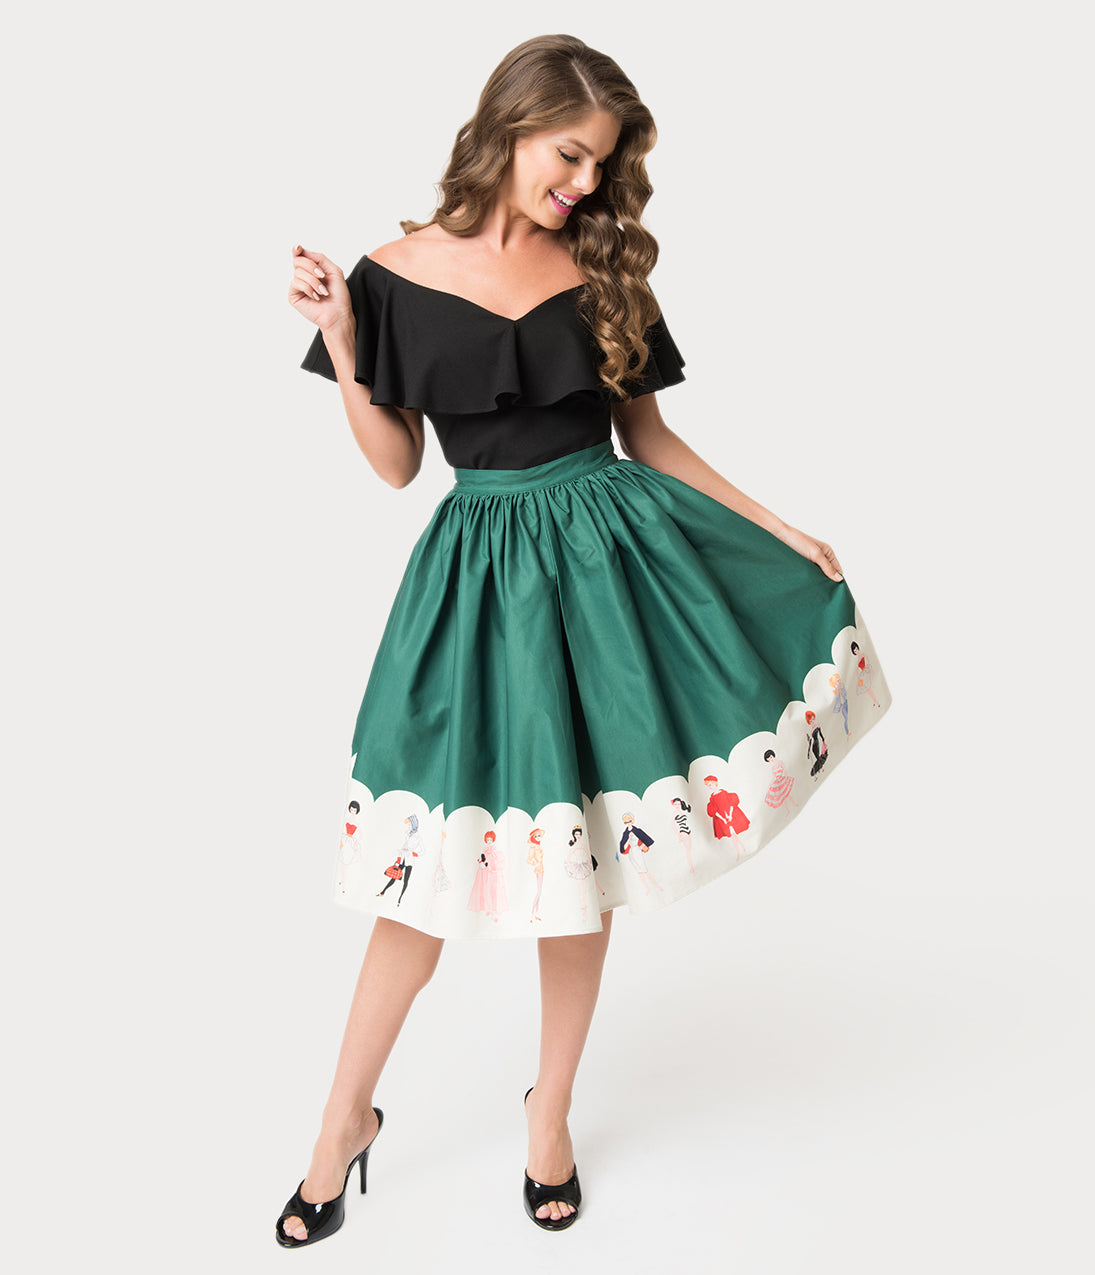 Vintage Christmas Dress | Party Dresses | Night Out Outfits Barbie X Unique Vintage Green My Barbie Collection Swing Skirt $88.00 AT vintagedancer.com